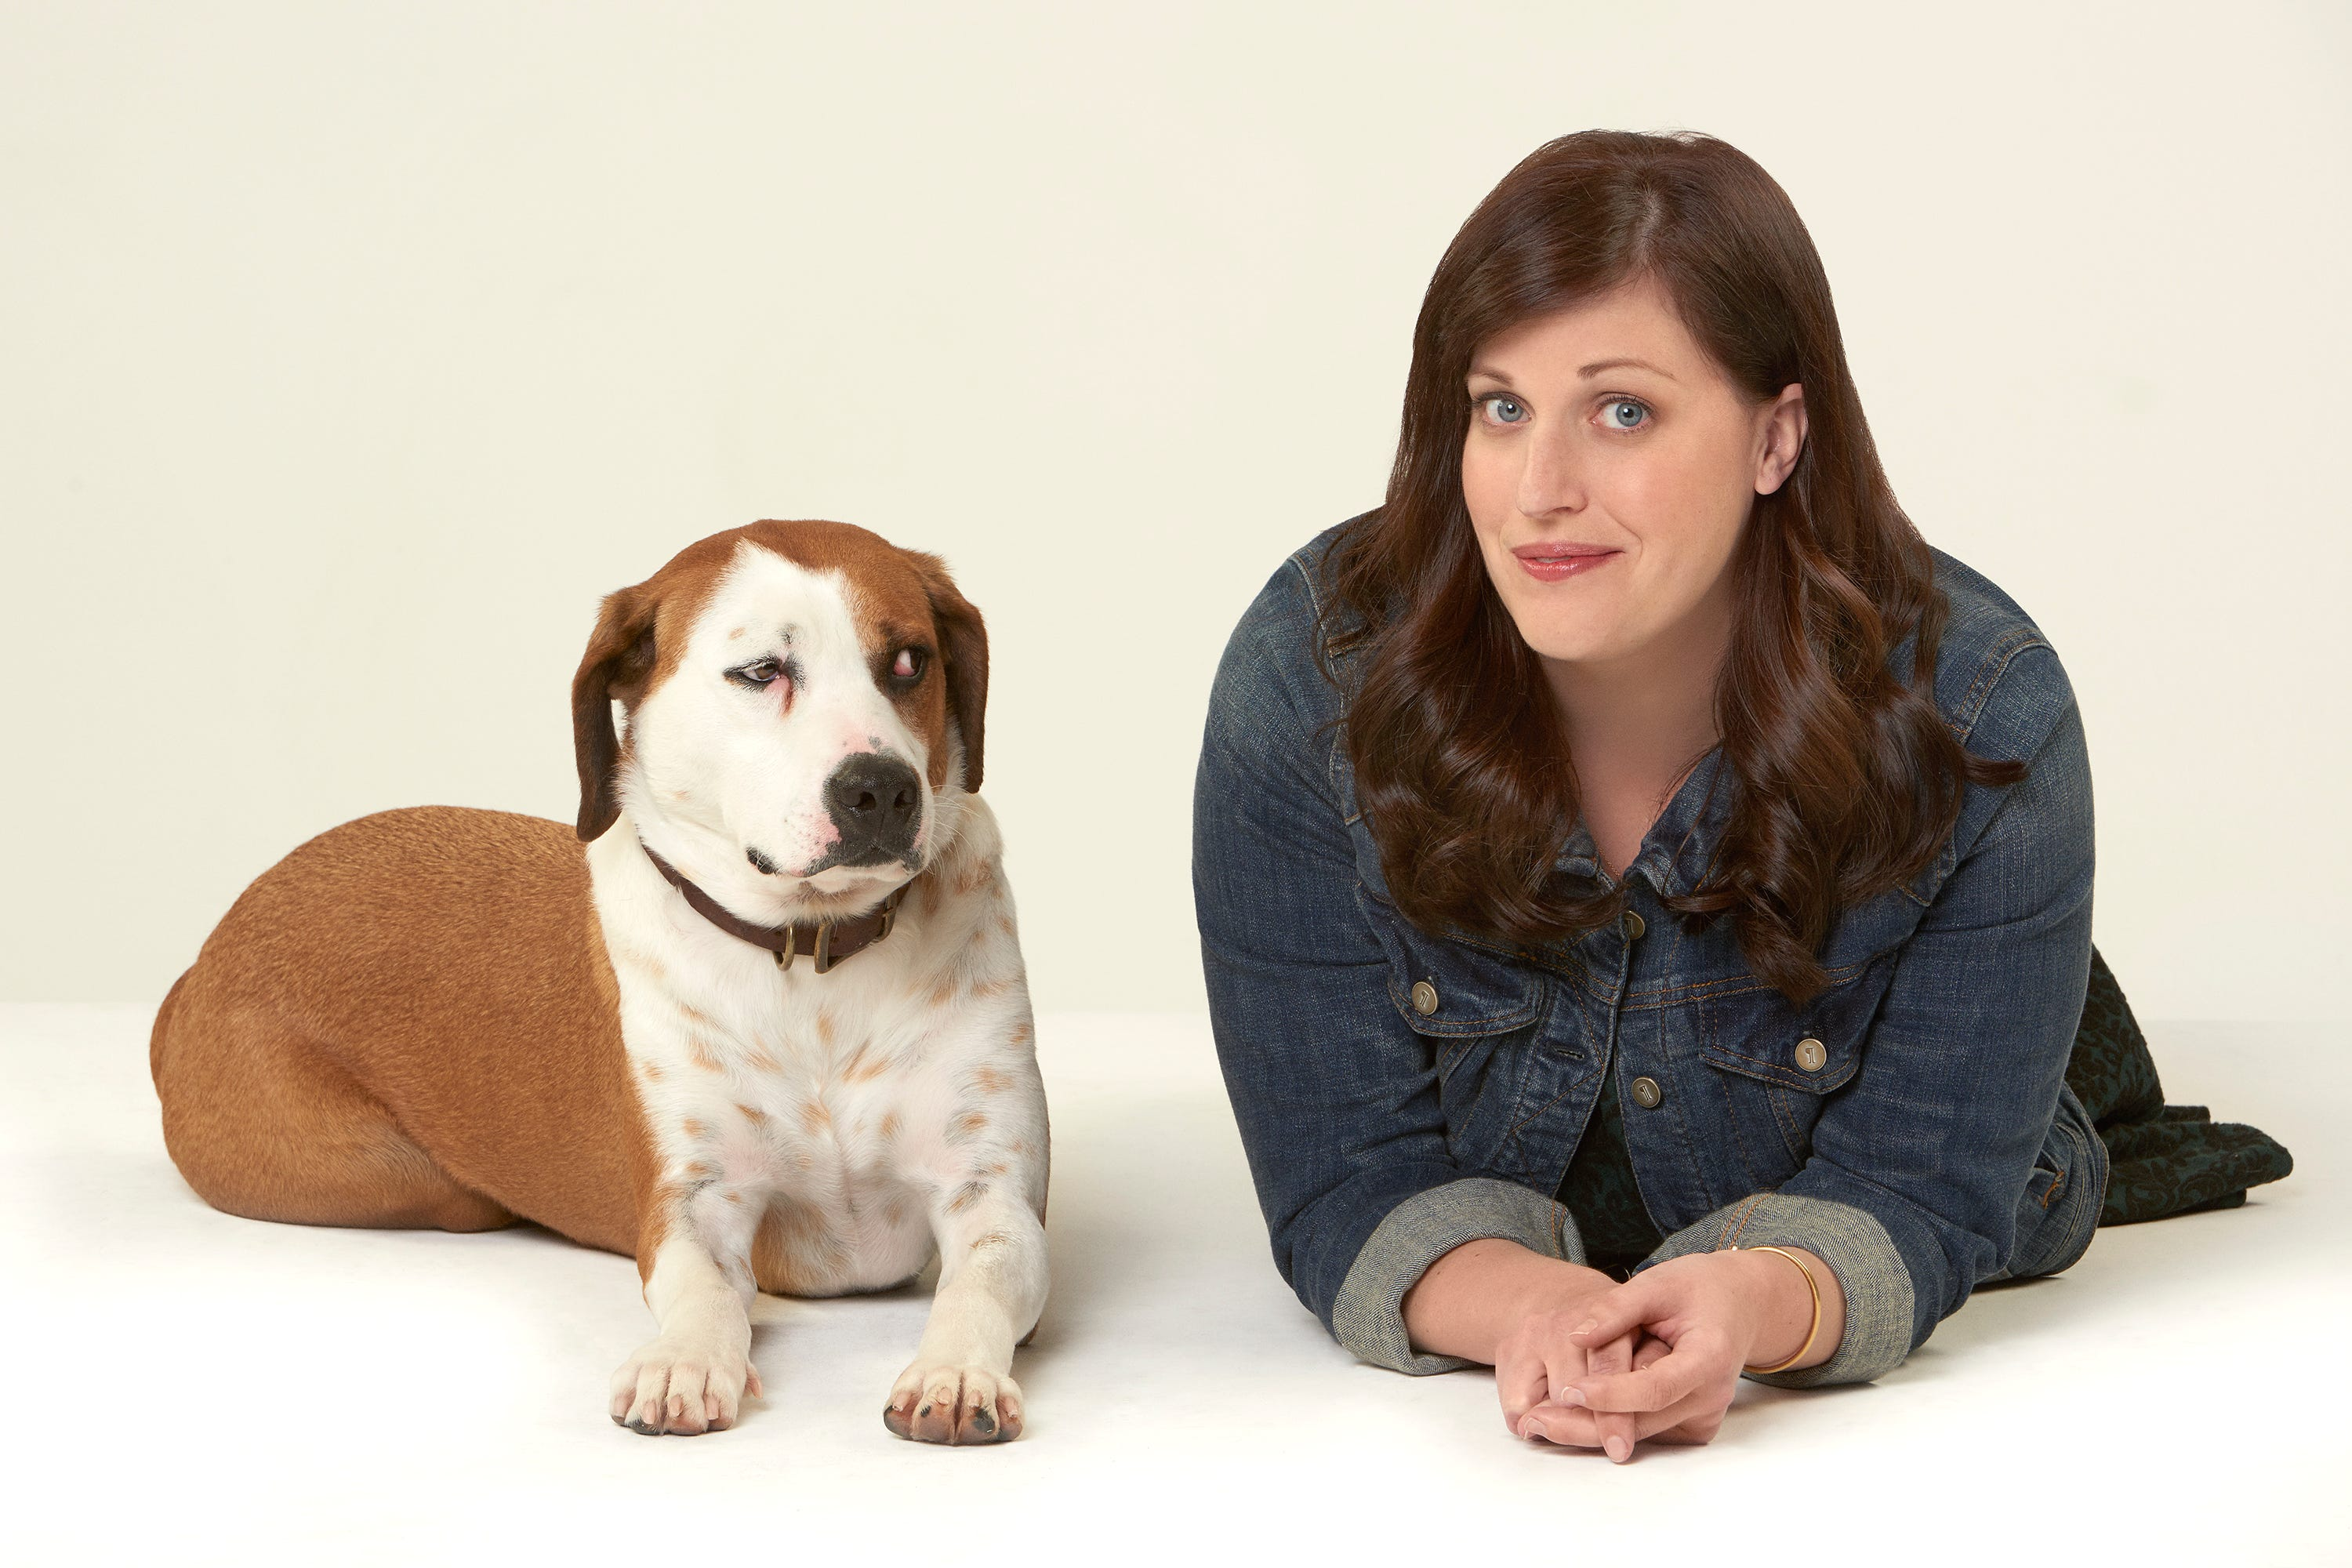 Review: 'Downward Dog' sits well as amiable summer comedy